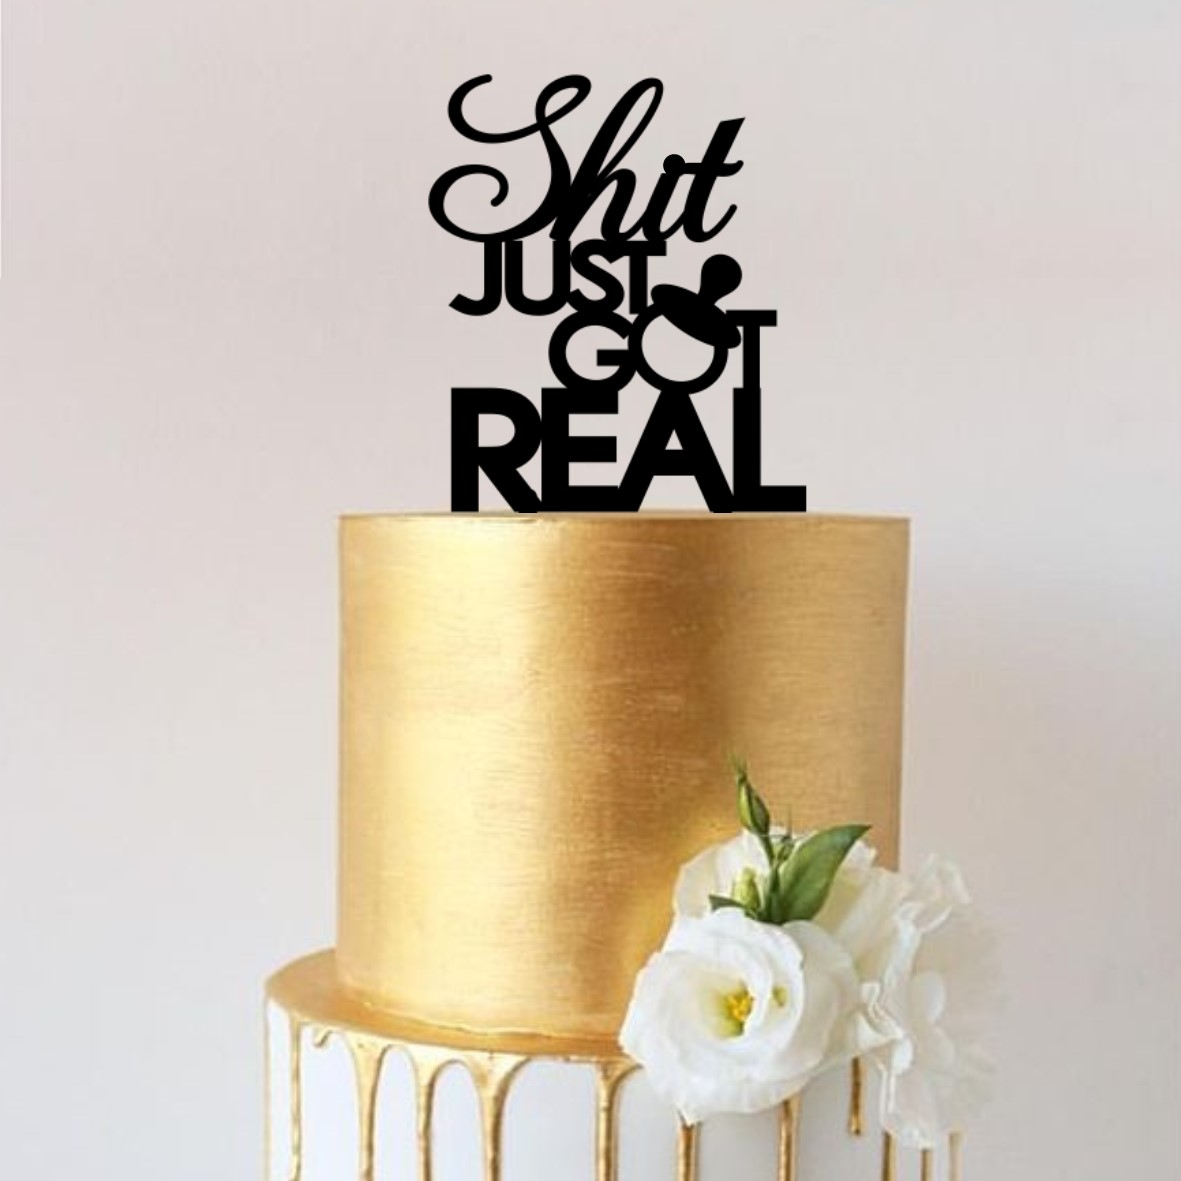 Shit Just Got Real Dummy Cake Topper